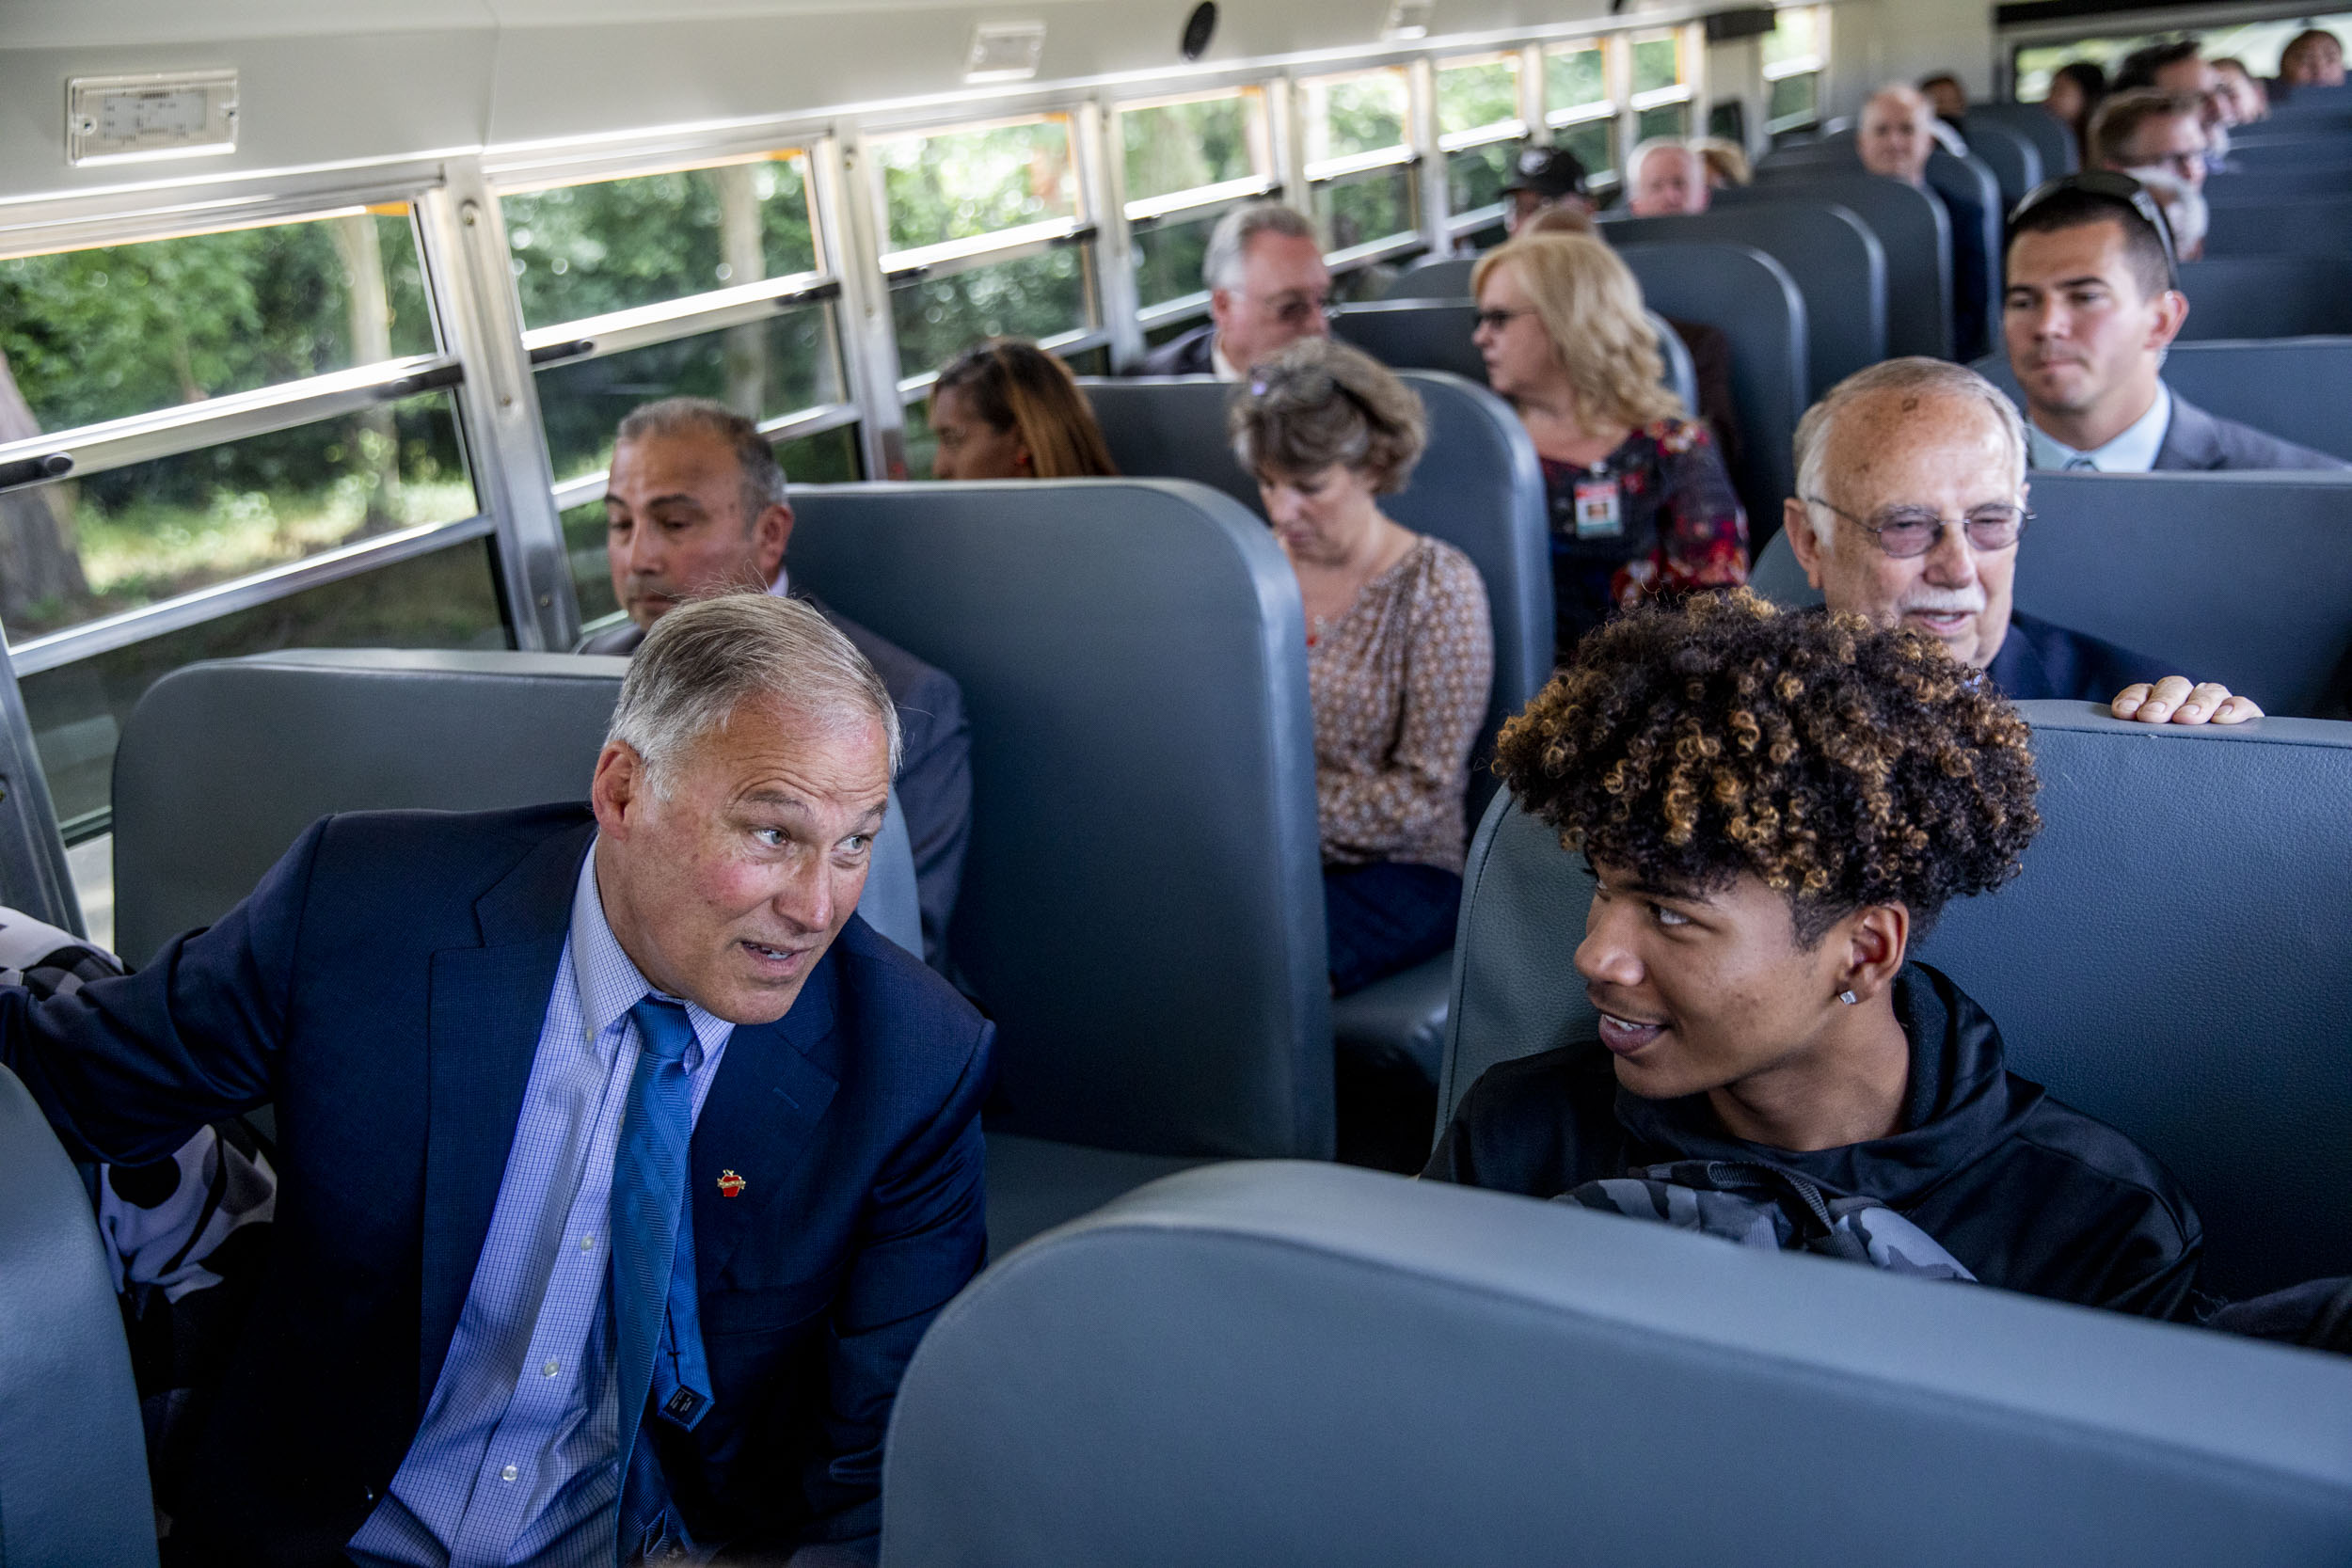 Governor Jay Inslee talks with freshman Malik Goodrum as they ride in the first electric school bus in Washington state during an event at Franklin Pierce High School in Tacoma on June 17, 2019. (Photo by Dorothy Edwards/Crosscut)